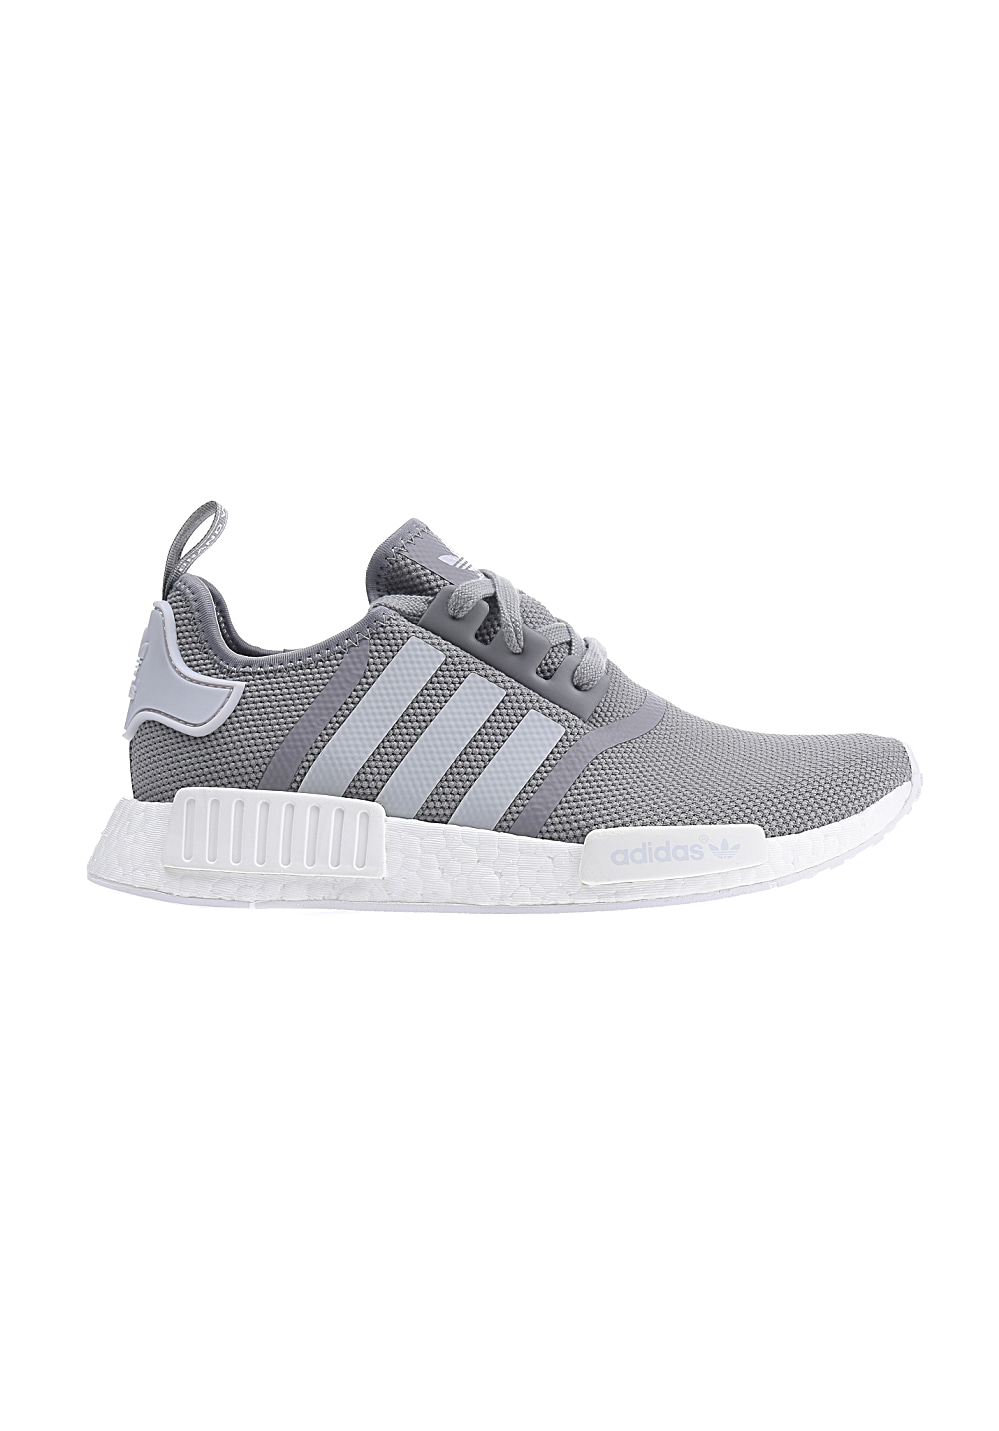 adidas nmd r1 homme gris